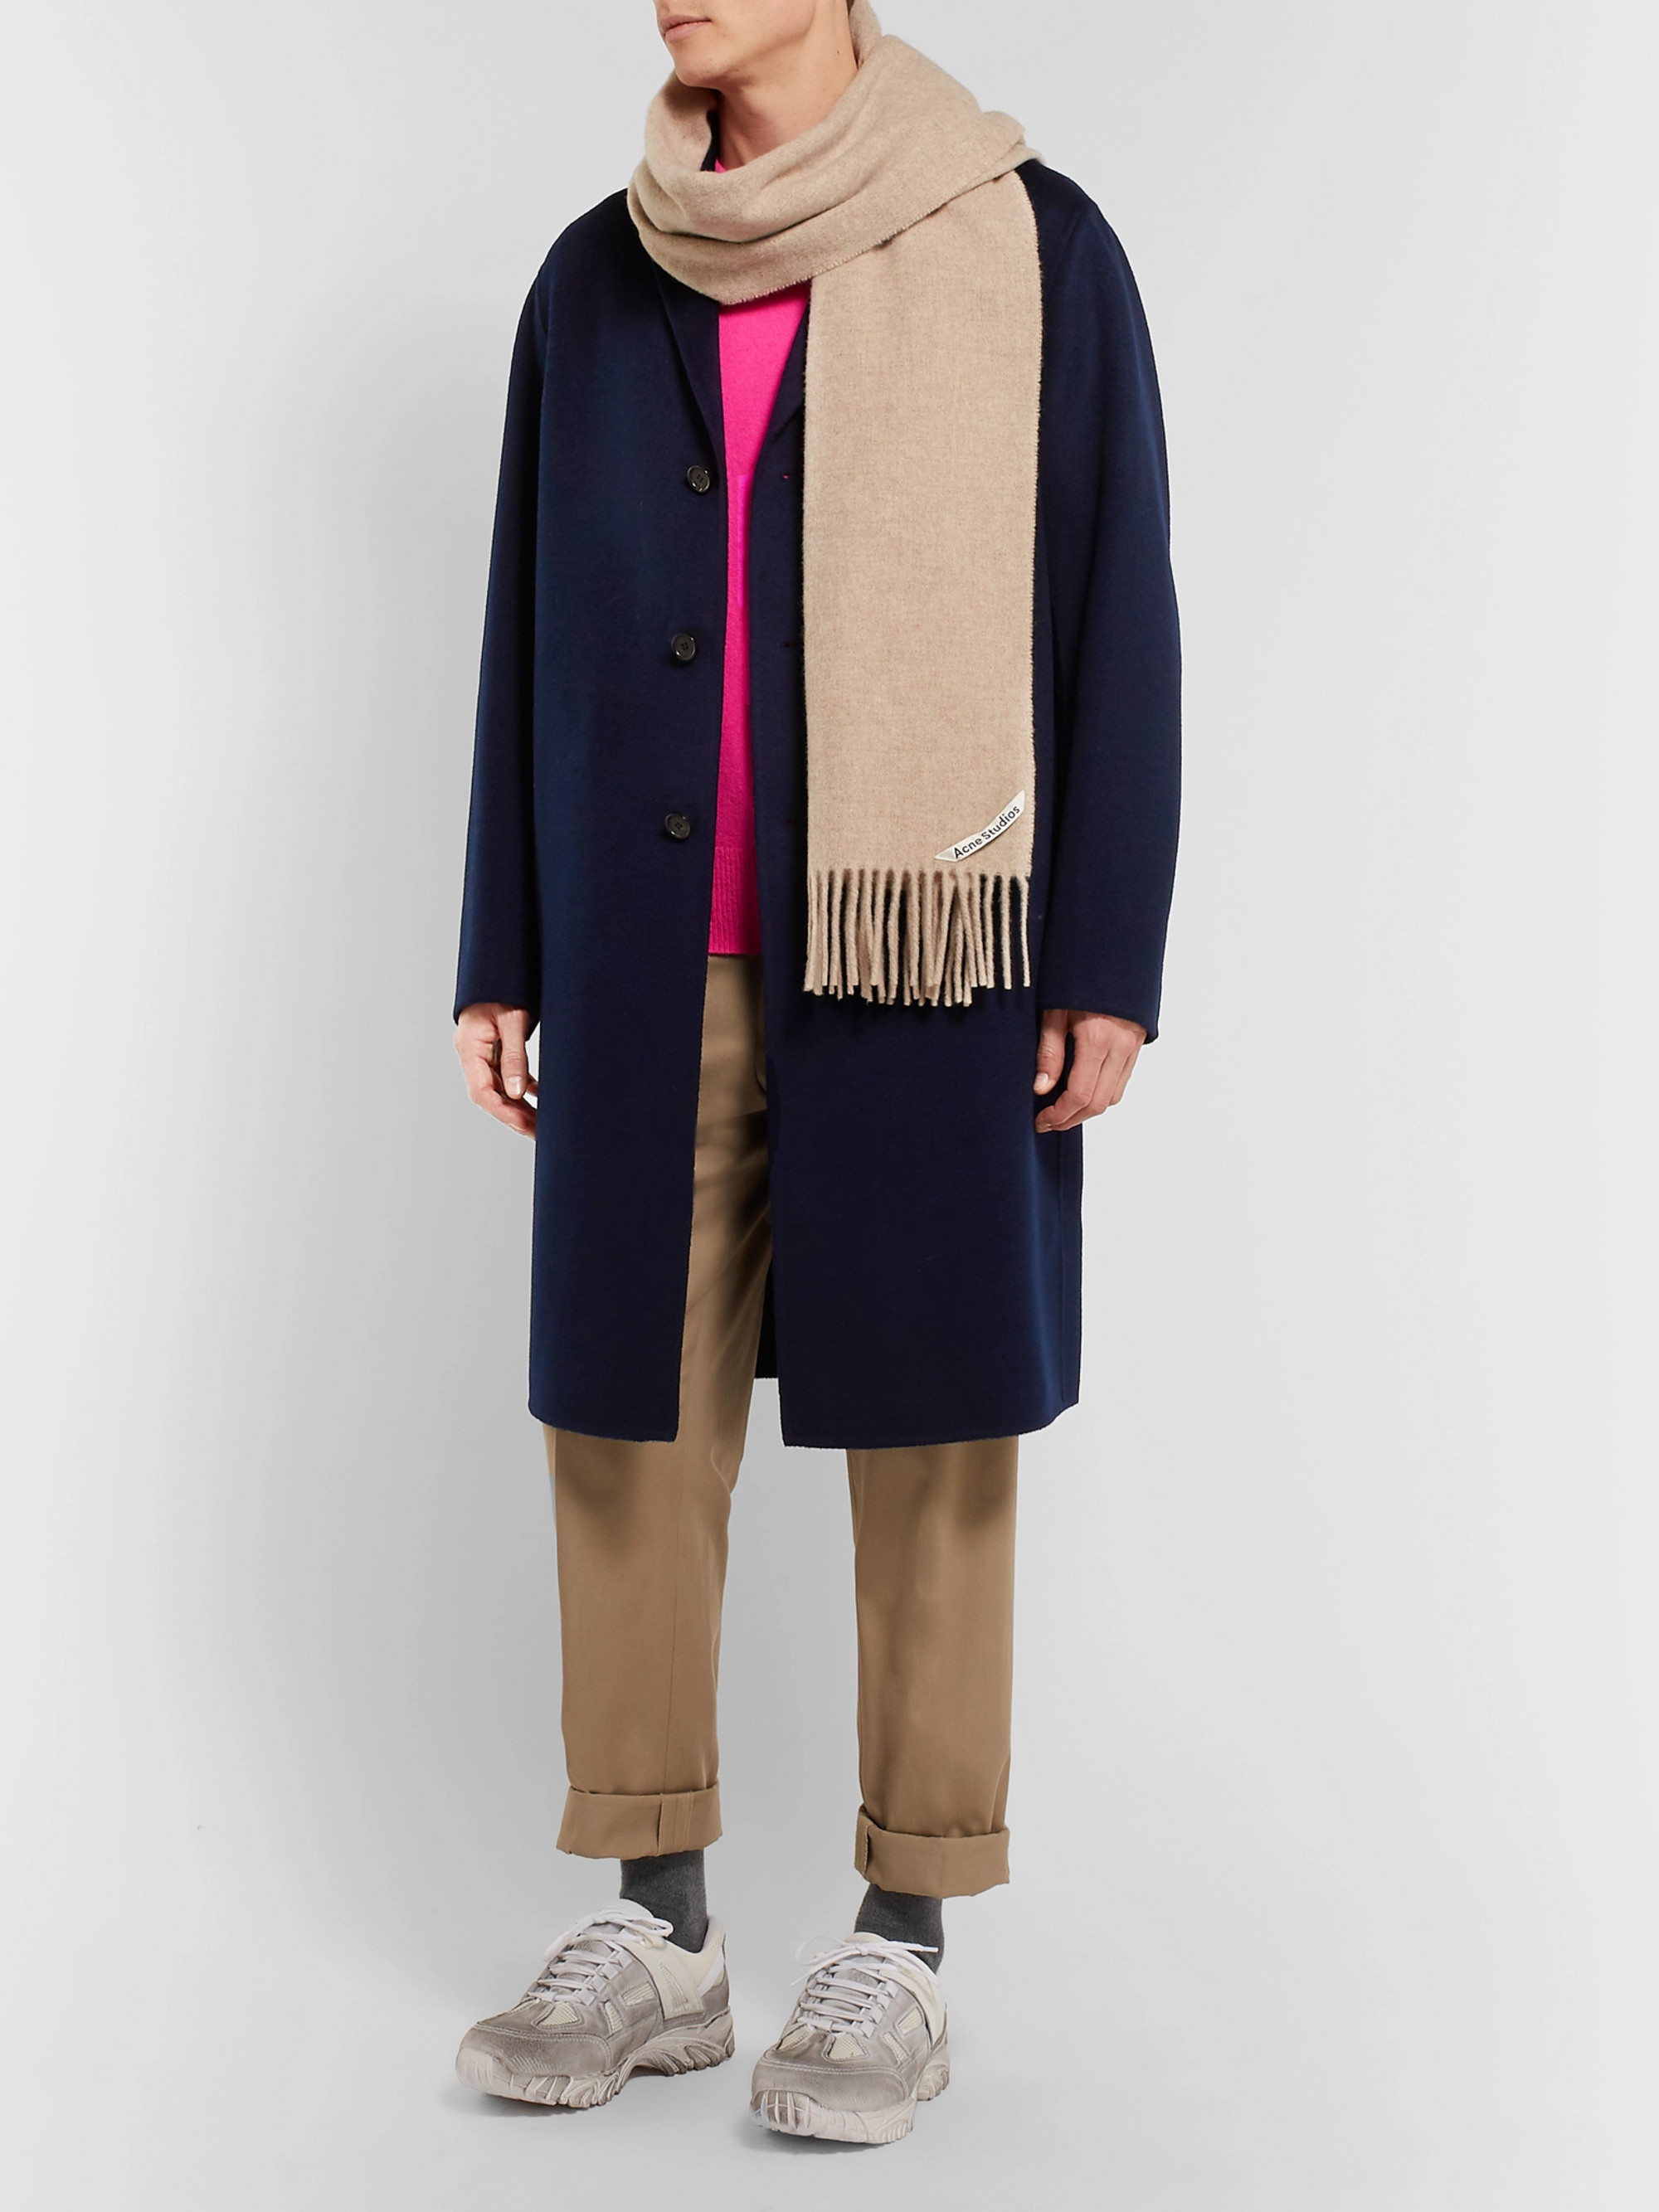 Acne Studios Chad Wool and Cashmere-Blend Coat